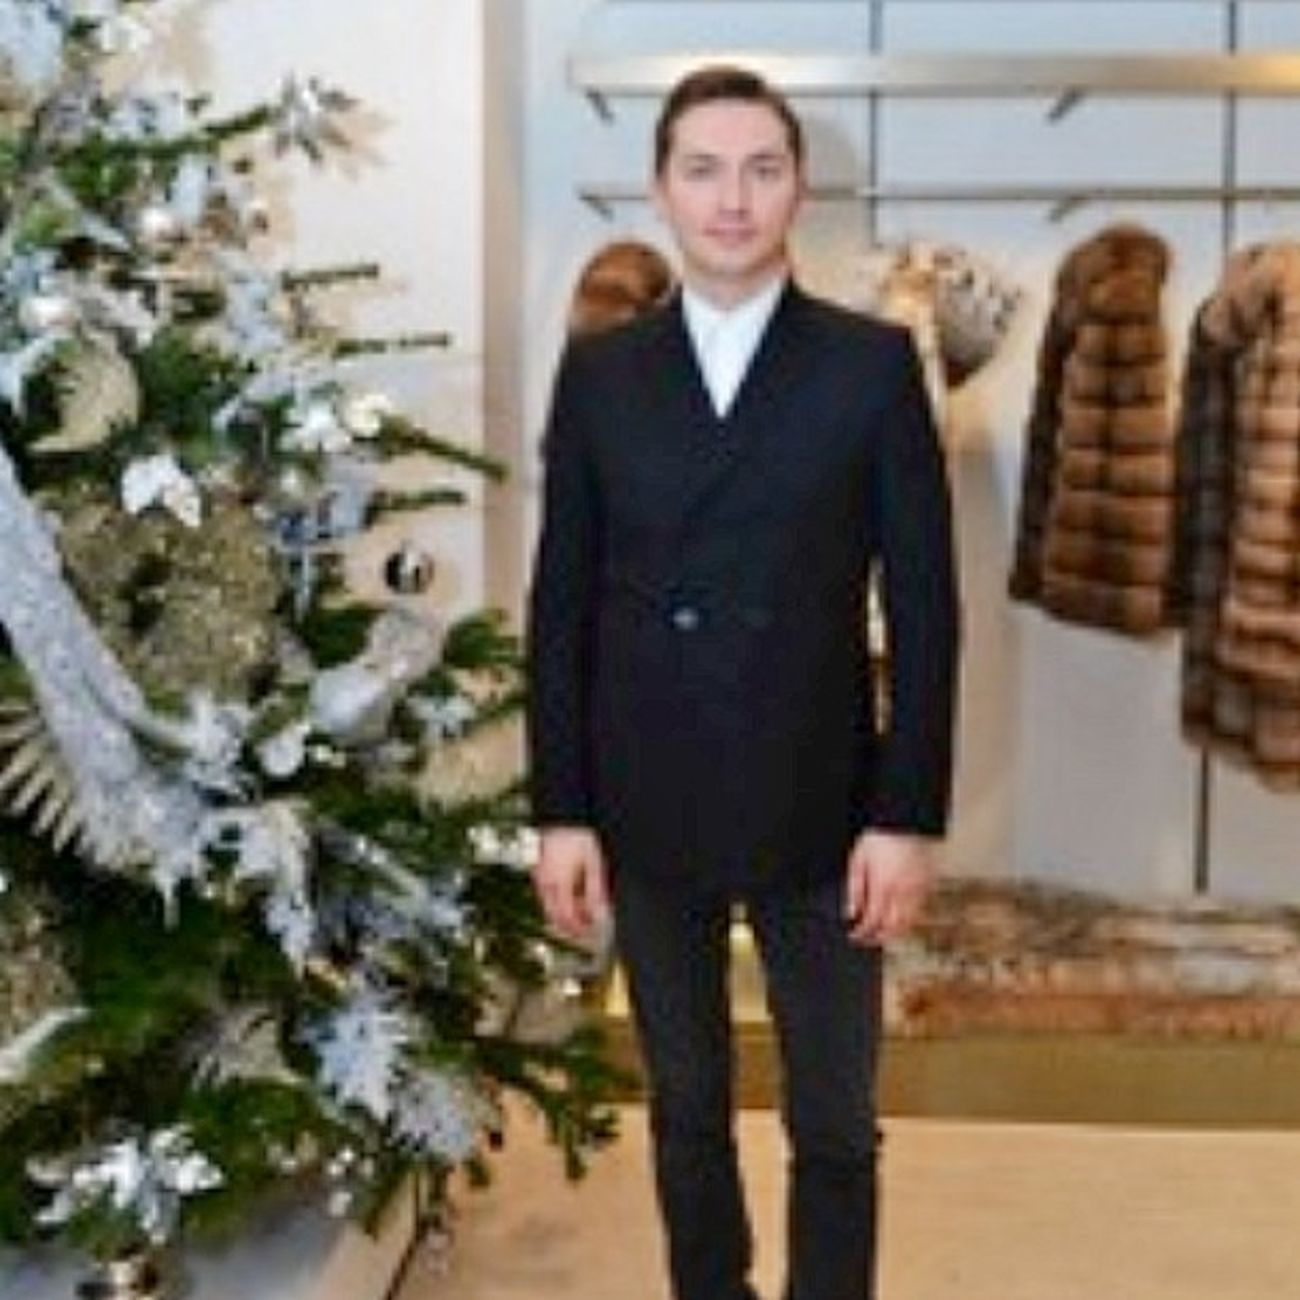 Igor Garanin Editor-in-chief of Robb Report Russia, at Daniel Benjamin Geneva in Moscow Igorgaranin Danielbenjamin . Danielbenjamingeneva Moscow Russia Geneva Switzerland Astana Kazakhstan luxury fashion fur robbreportrussia robbreport @igorgaranin @danielbenjamingeneva